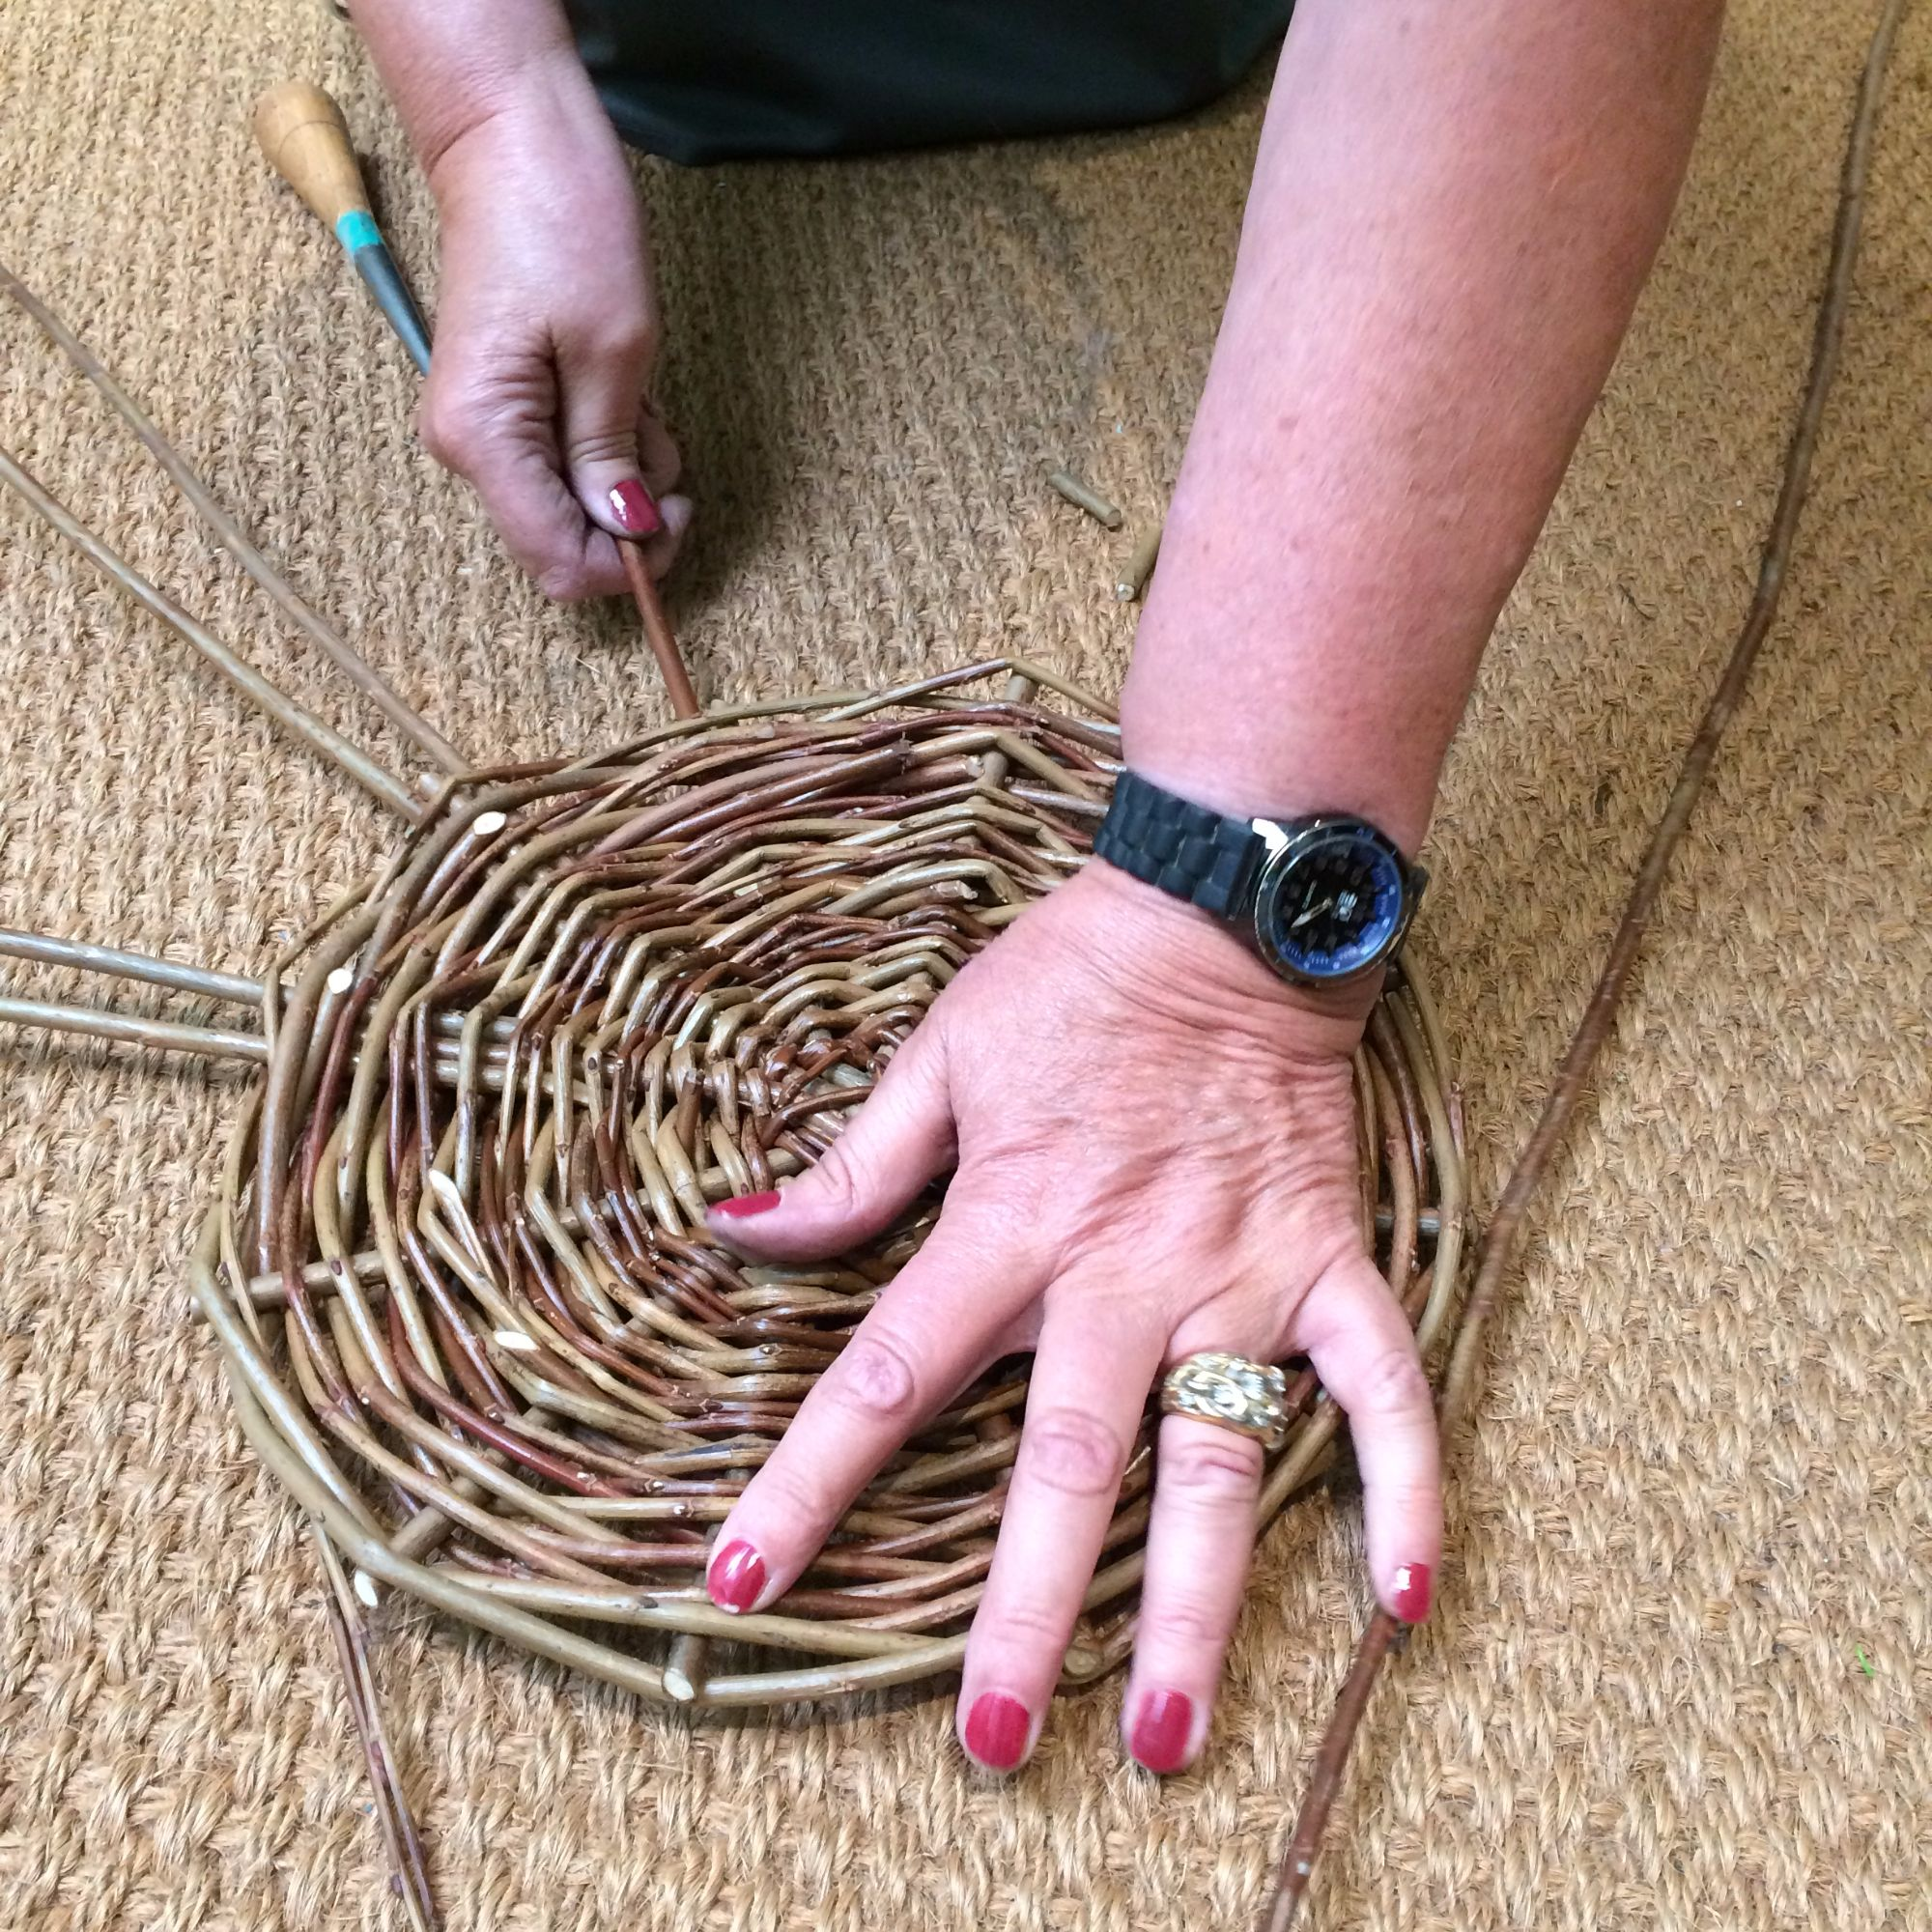 Basket Making Workshop: Fruit Basket - The Base